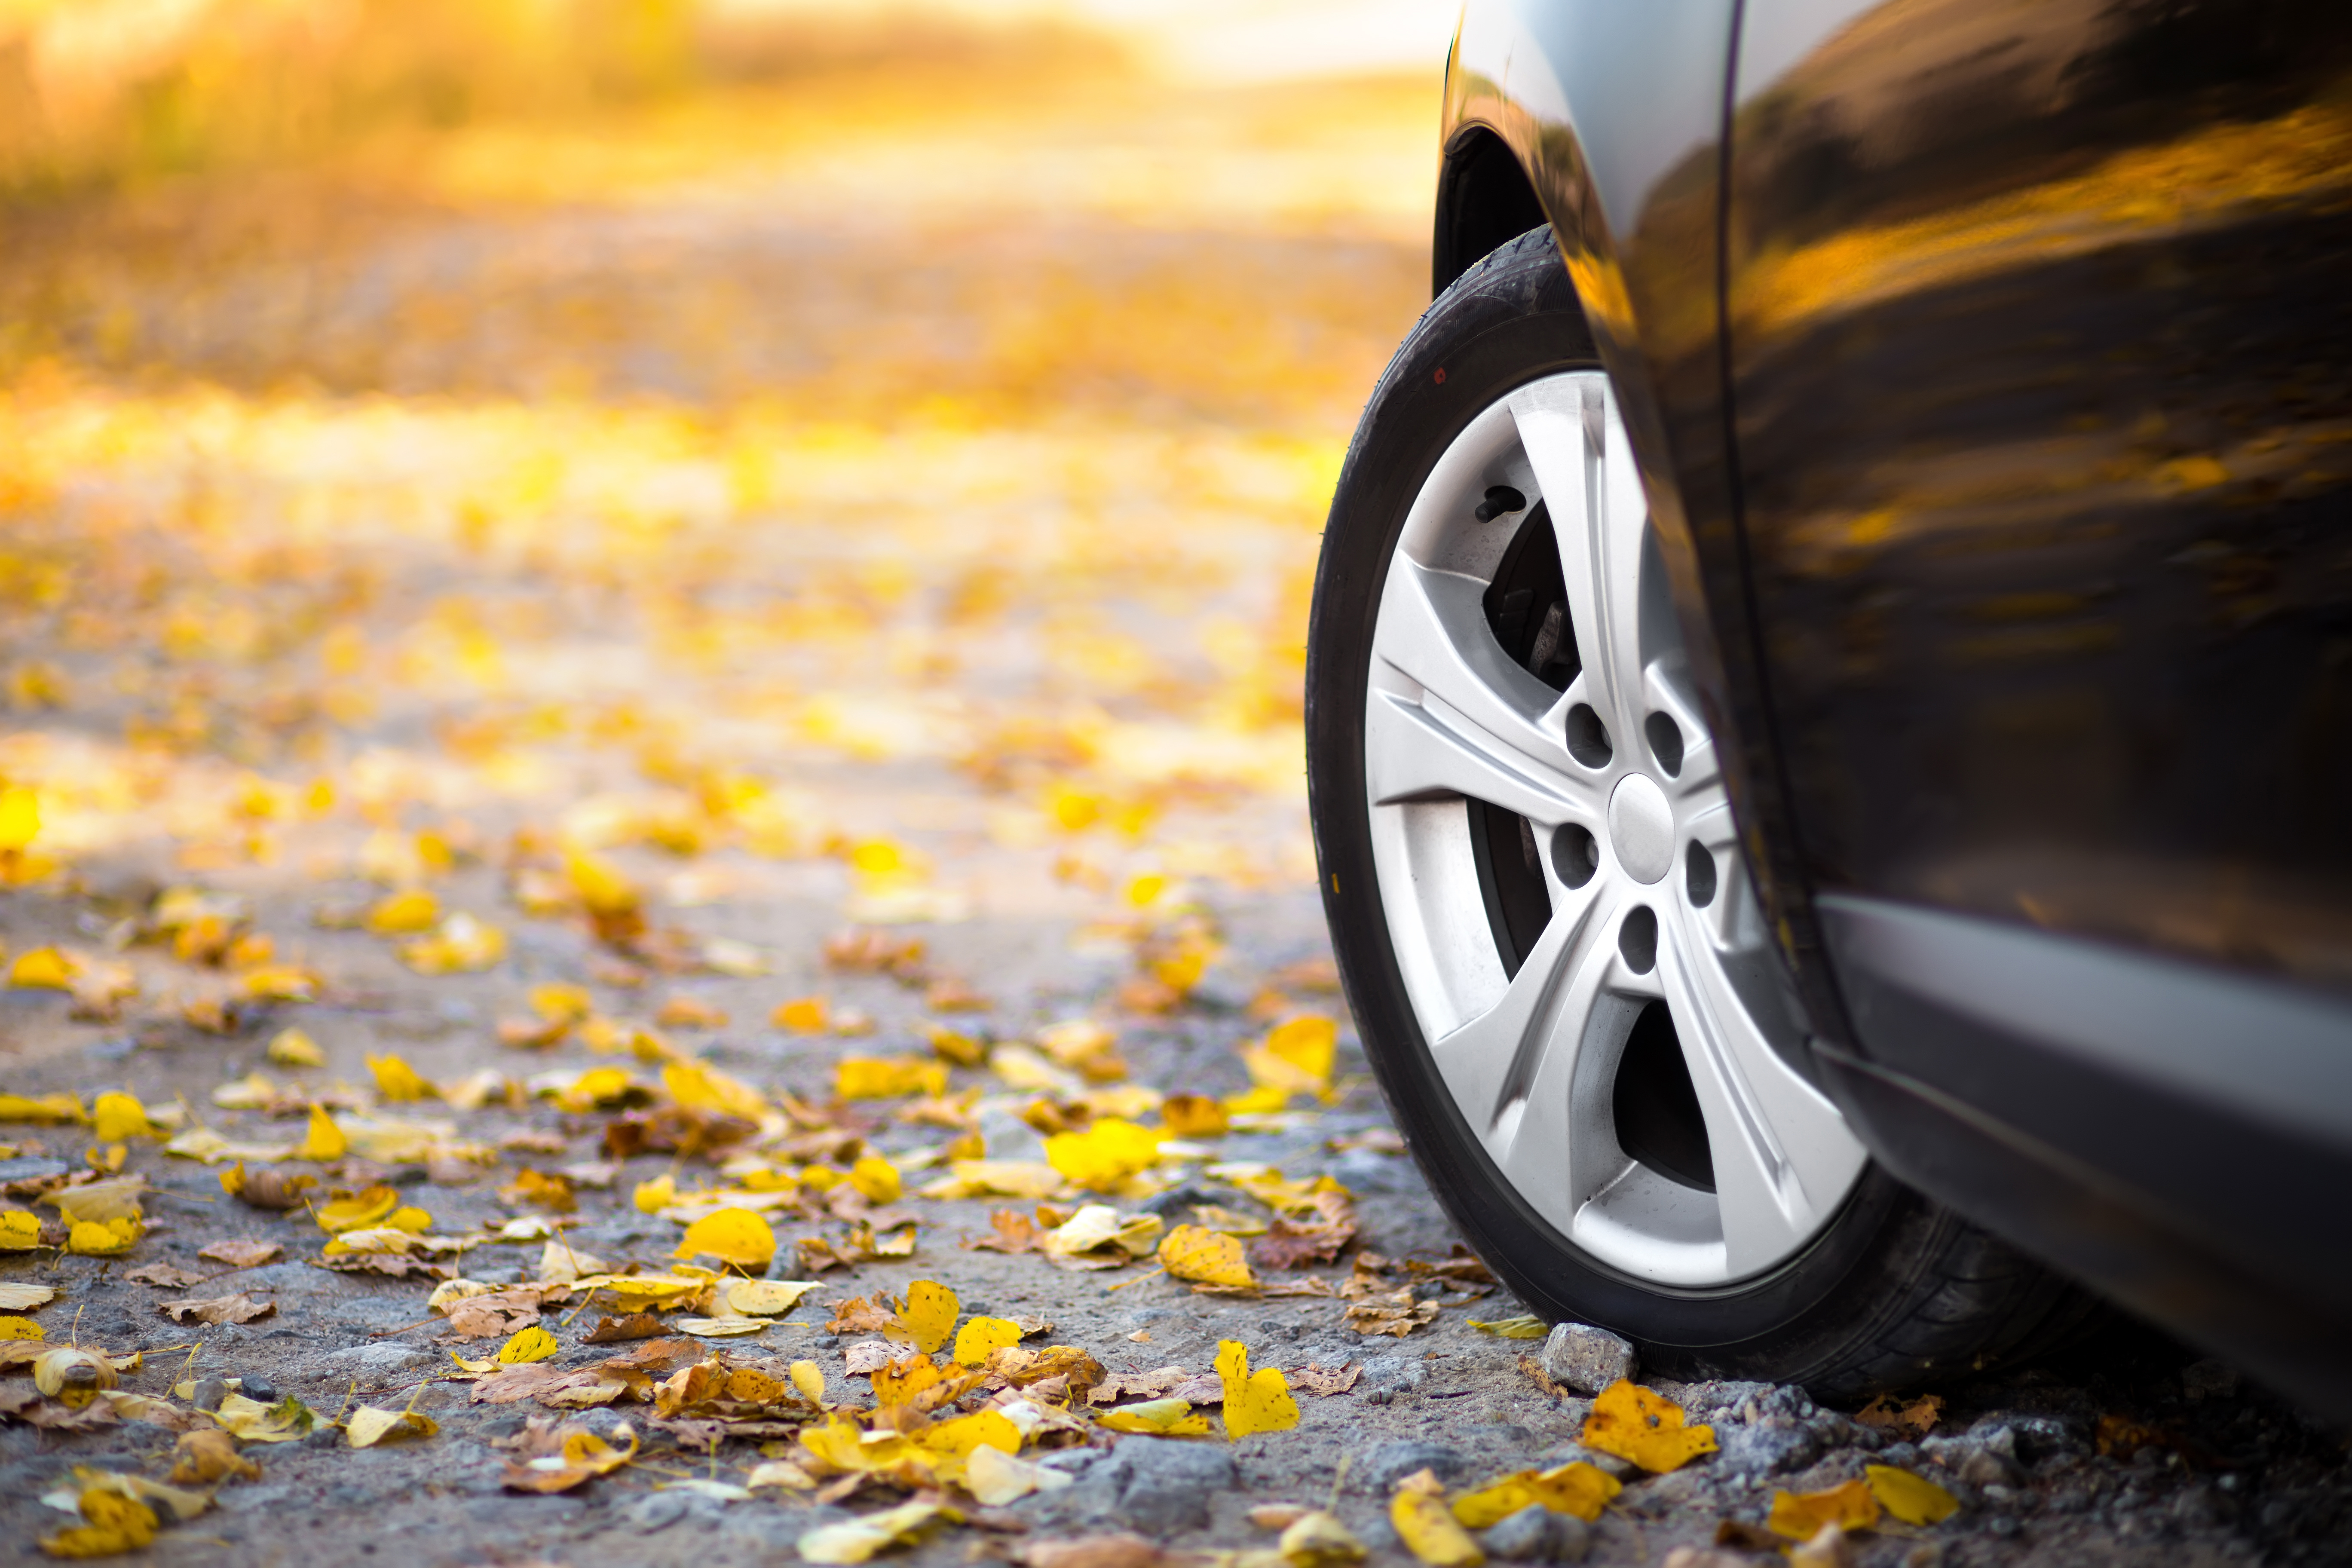 Easy Car Maintenance Tips for the Fall